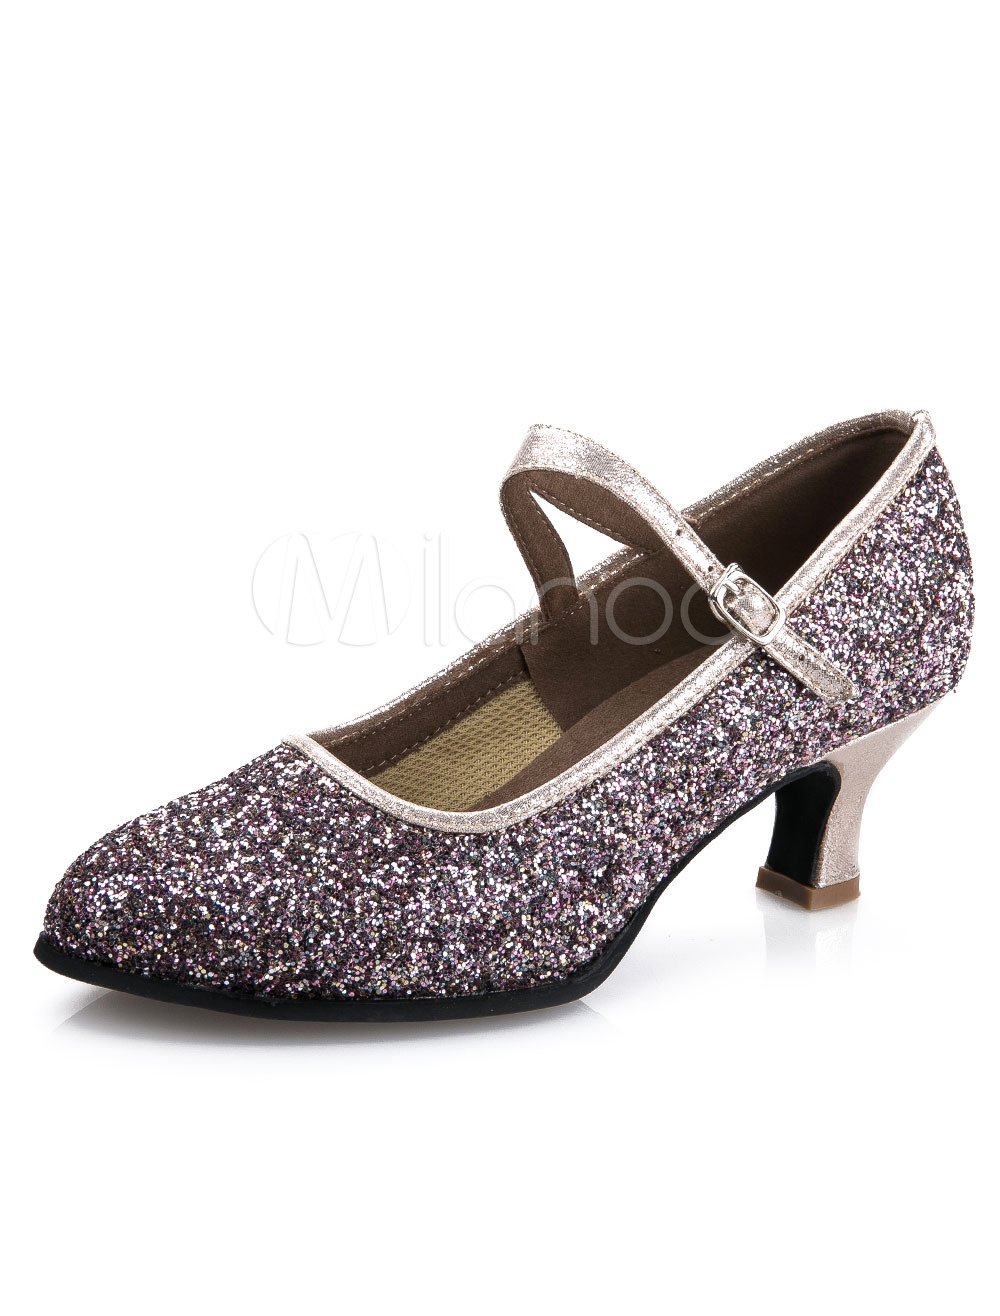 Silver Dance Pumps Straps Glitter Heels for Women